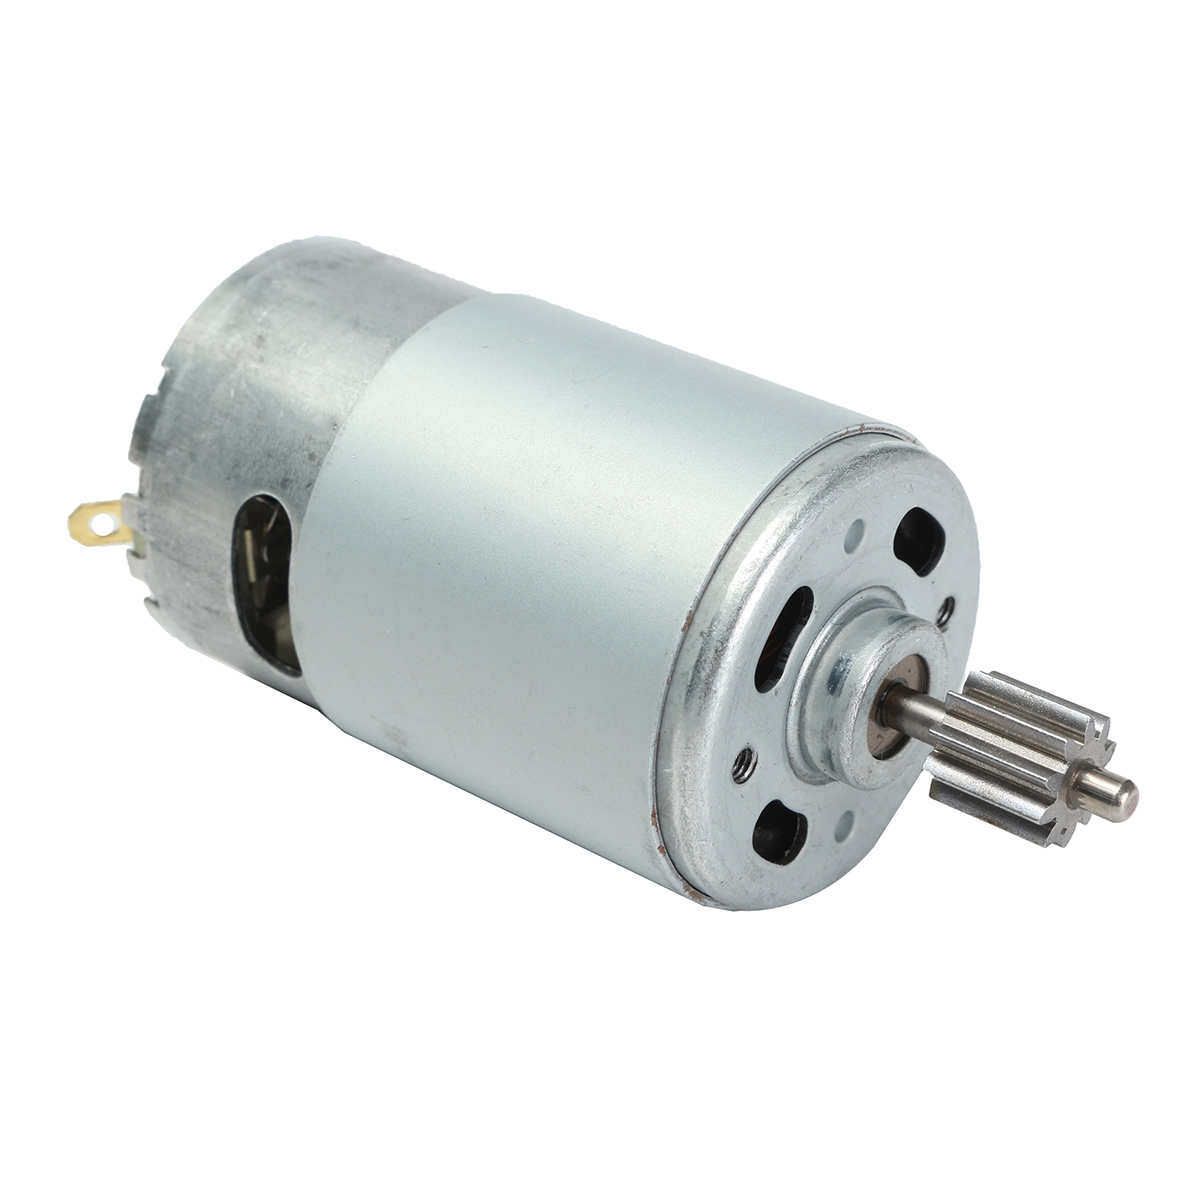 how to make load test the ho 12 v motor